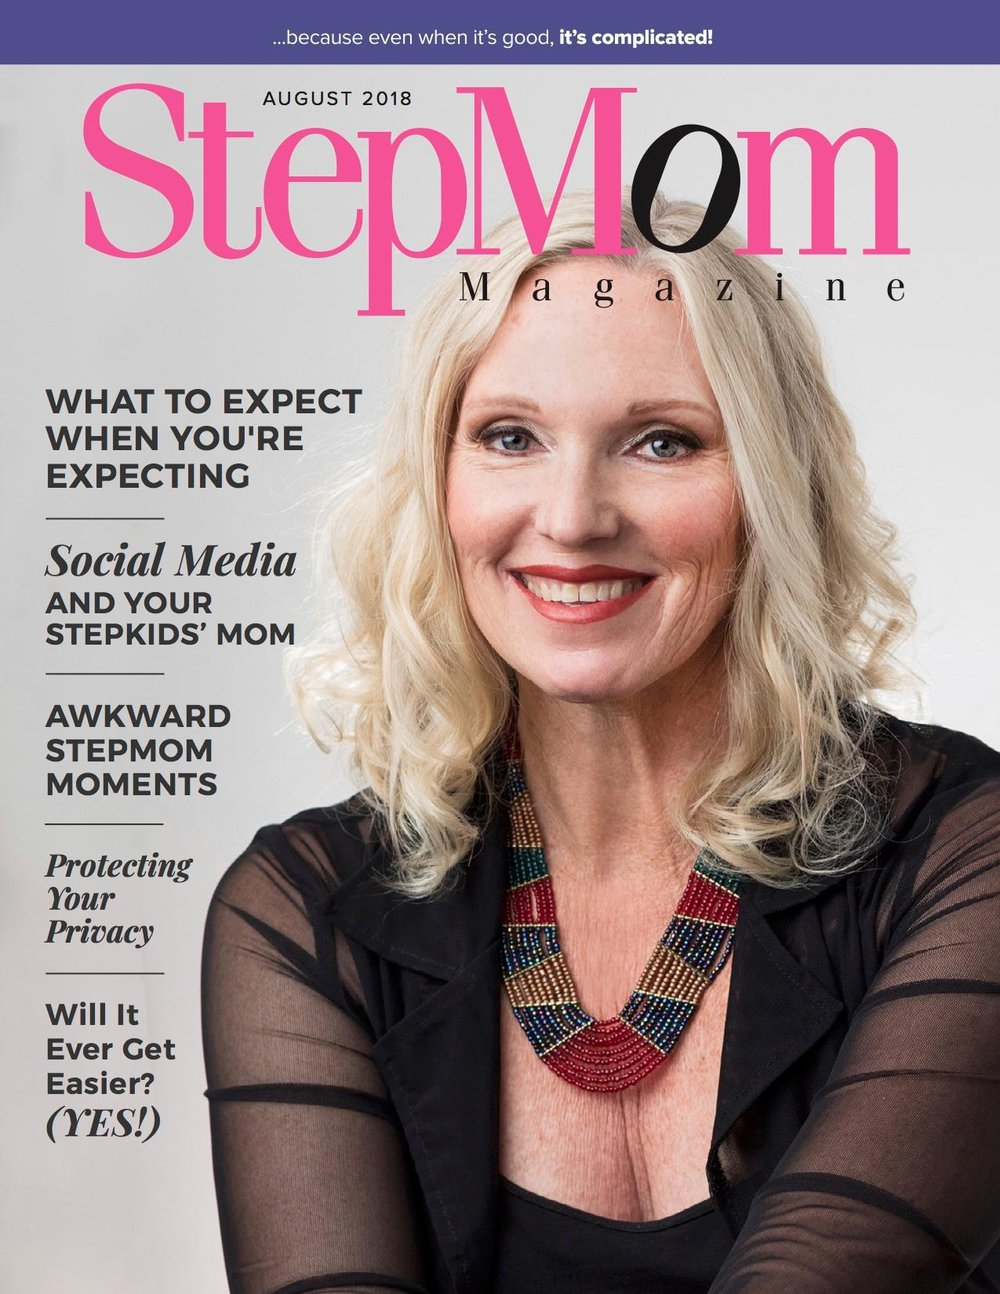 Shelley Stepmom Magazine Cover Aug 2018.jpg